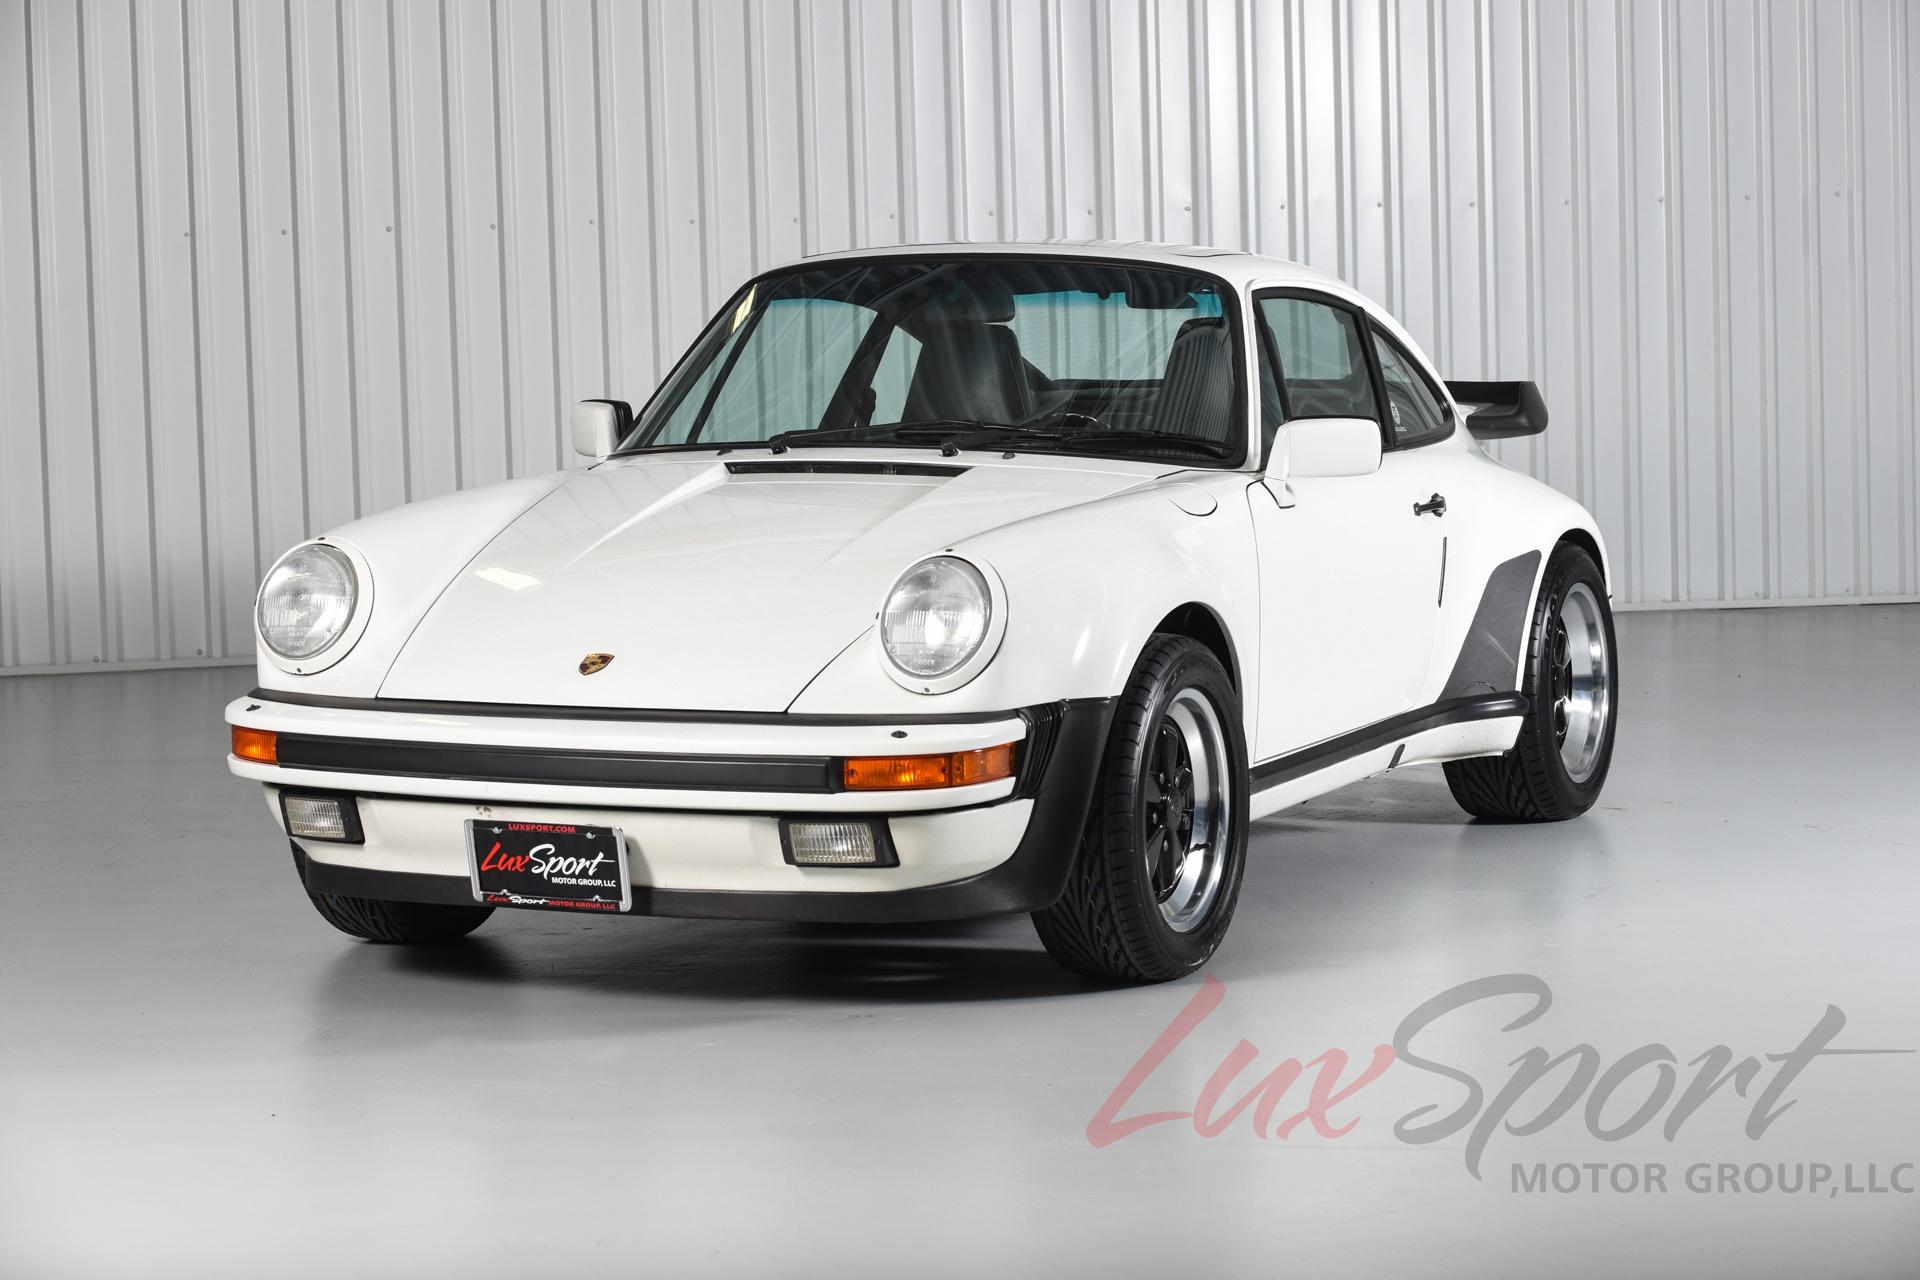 1989 Porsche 930 Turbo Coupe Carrera Turbo Stock 1989125 For Sale Near Syosset Ny Ny Porsche Dealer